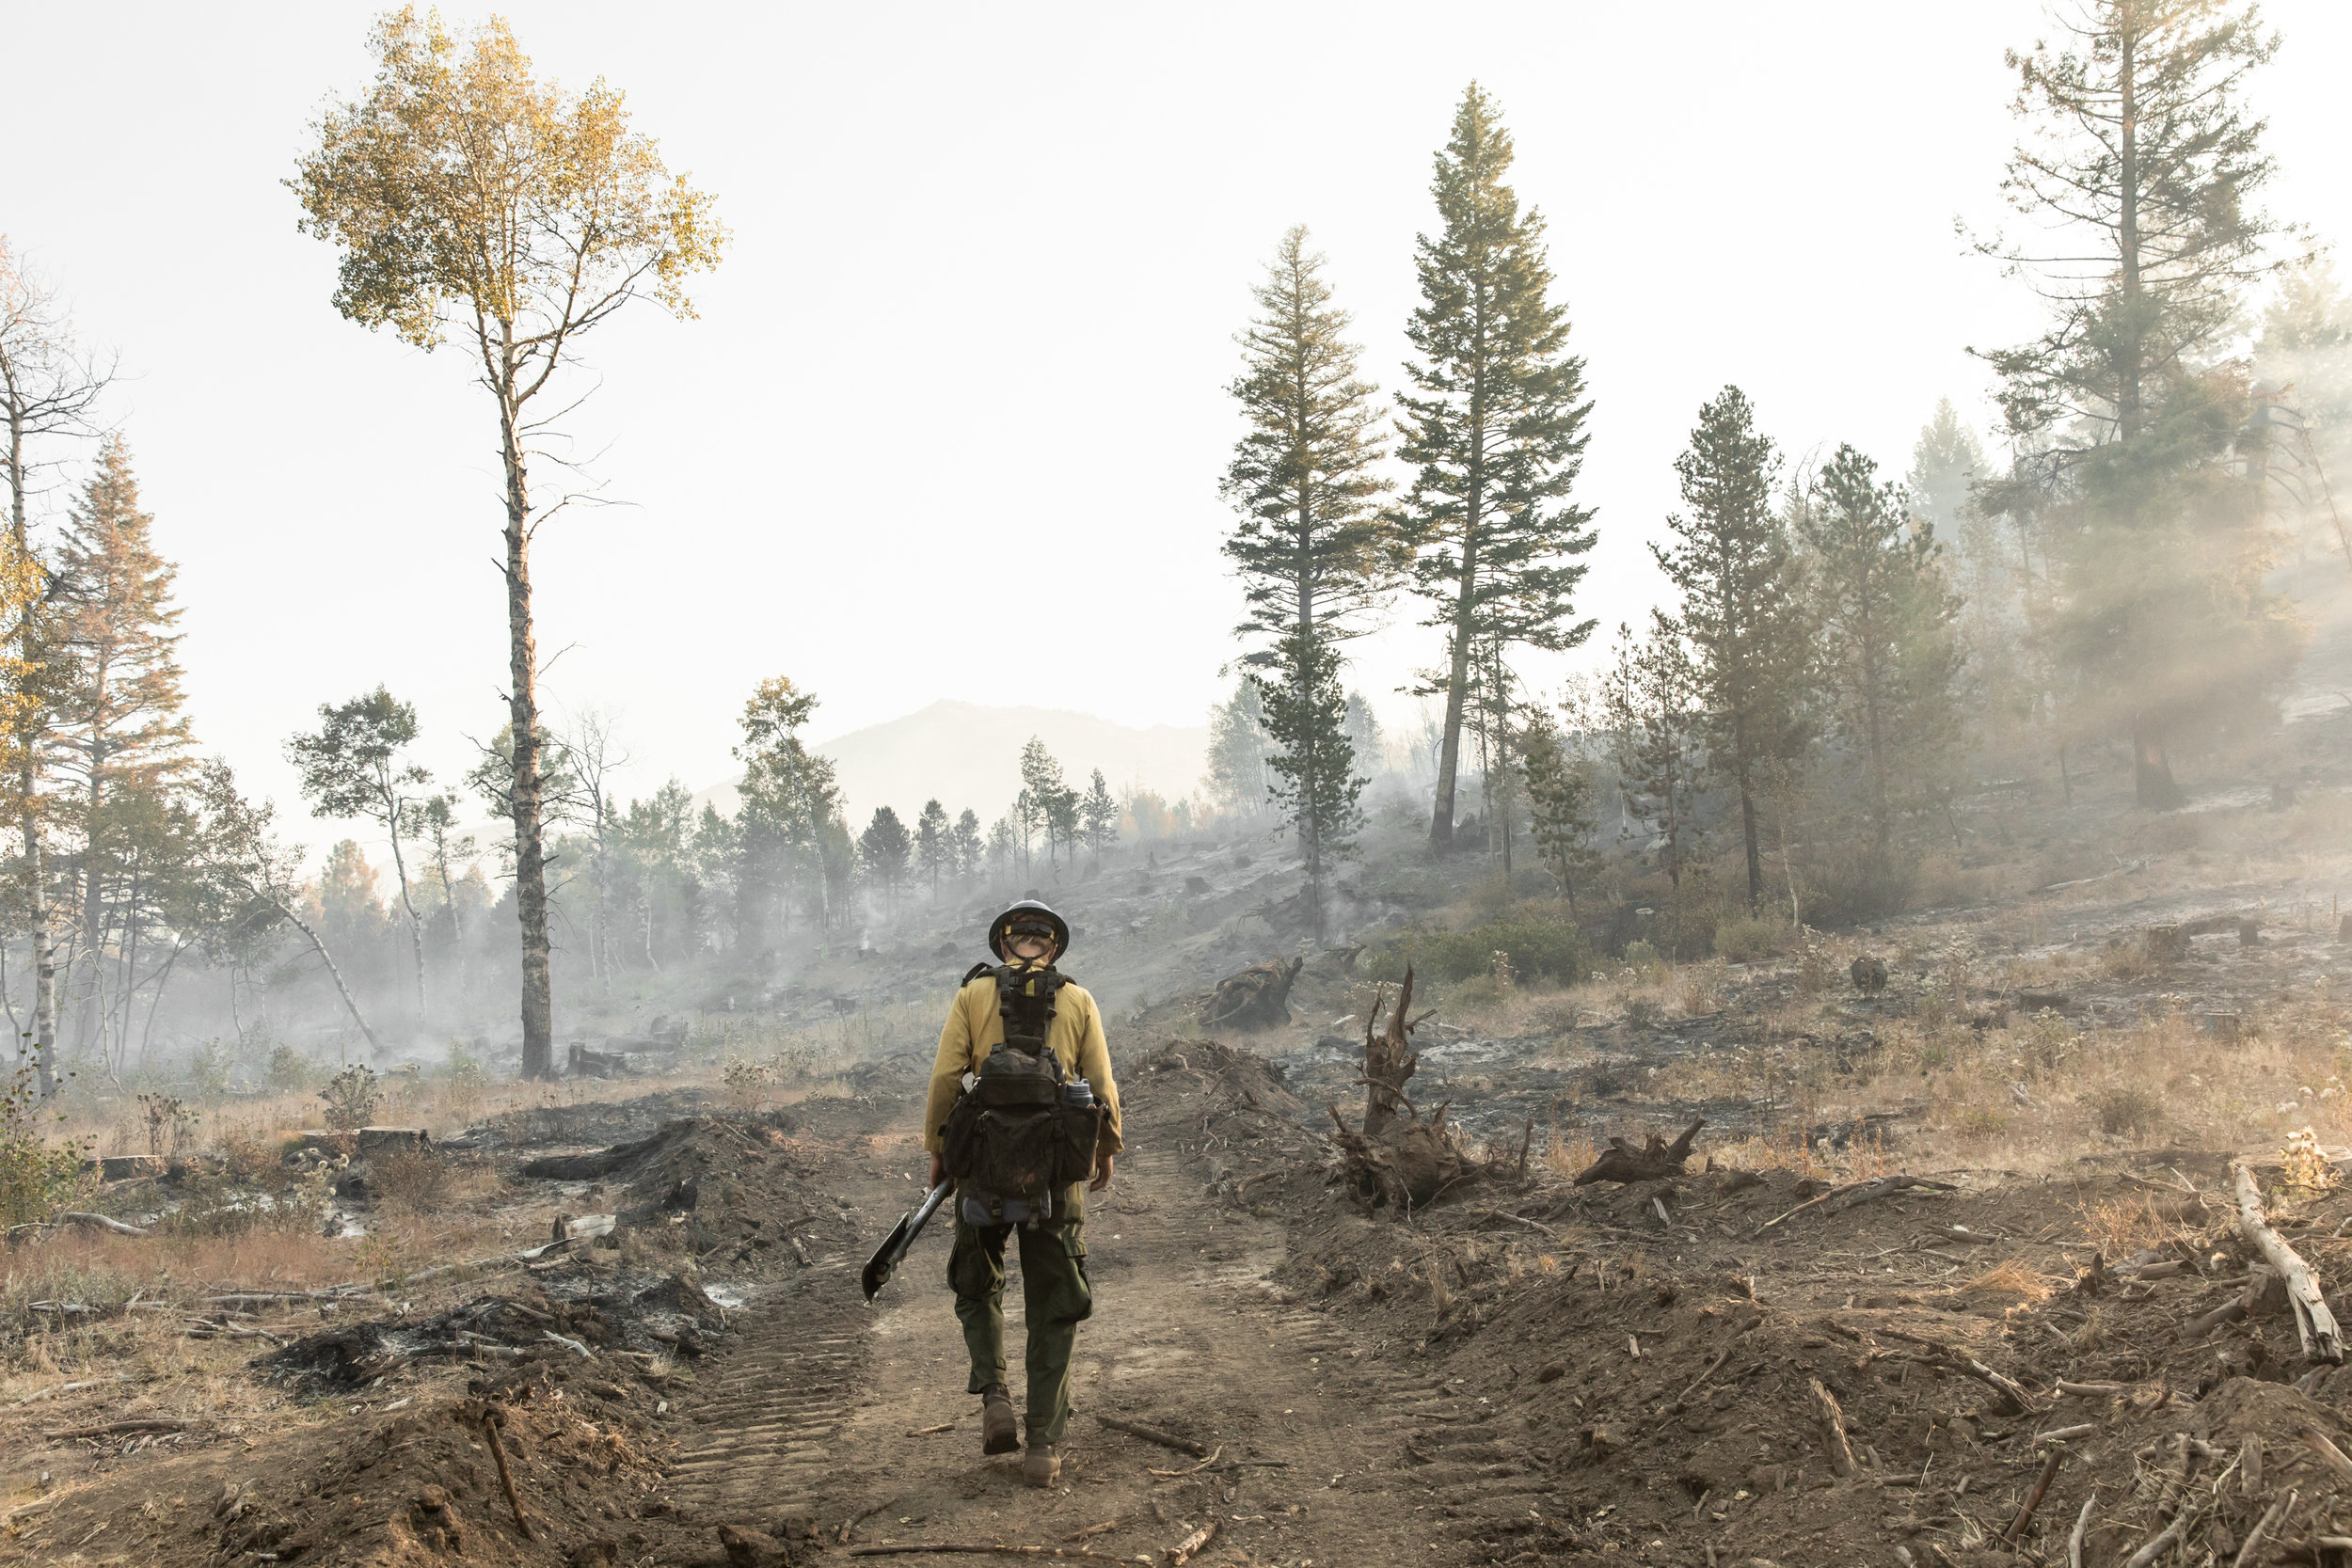 When I look at climate models, I see wildfires. It's the warmer temperatures. The earlier onset of spring will melt snow off our landscapes earlier and will dry out our forest and rangelands earlier. And that is considerably lengthening the fire season.And, I worry about water. Are we going to have enough water? It's certainly an issue for our agricultural communities and our forests.  - Jen Pierce, climate scientist